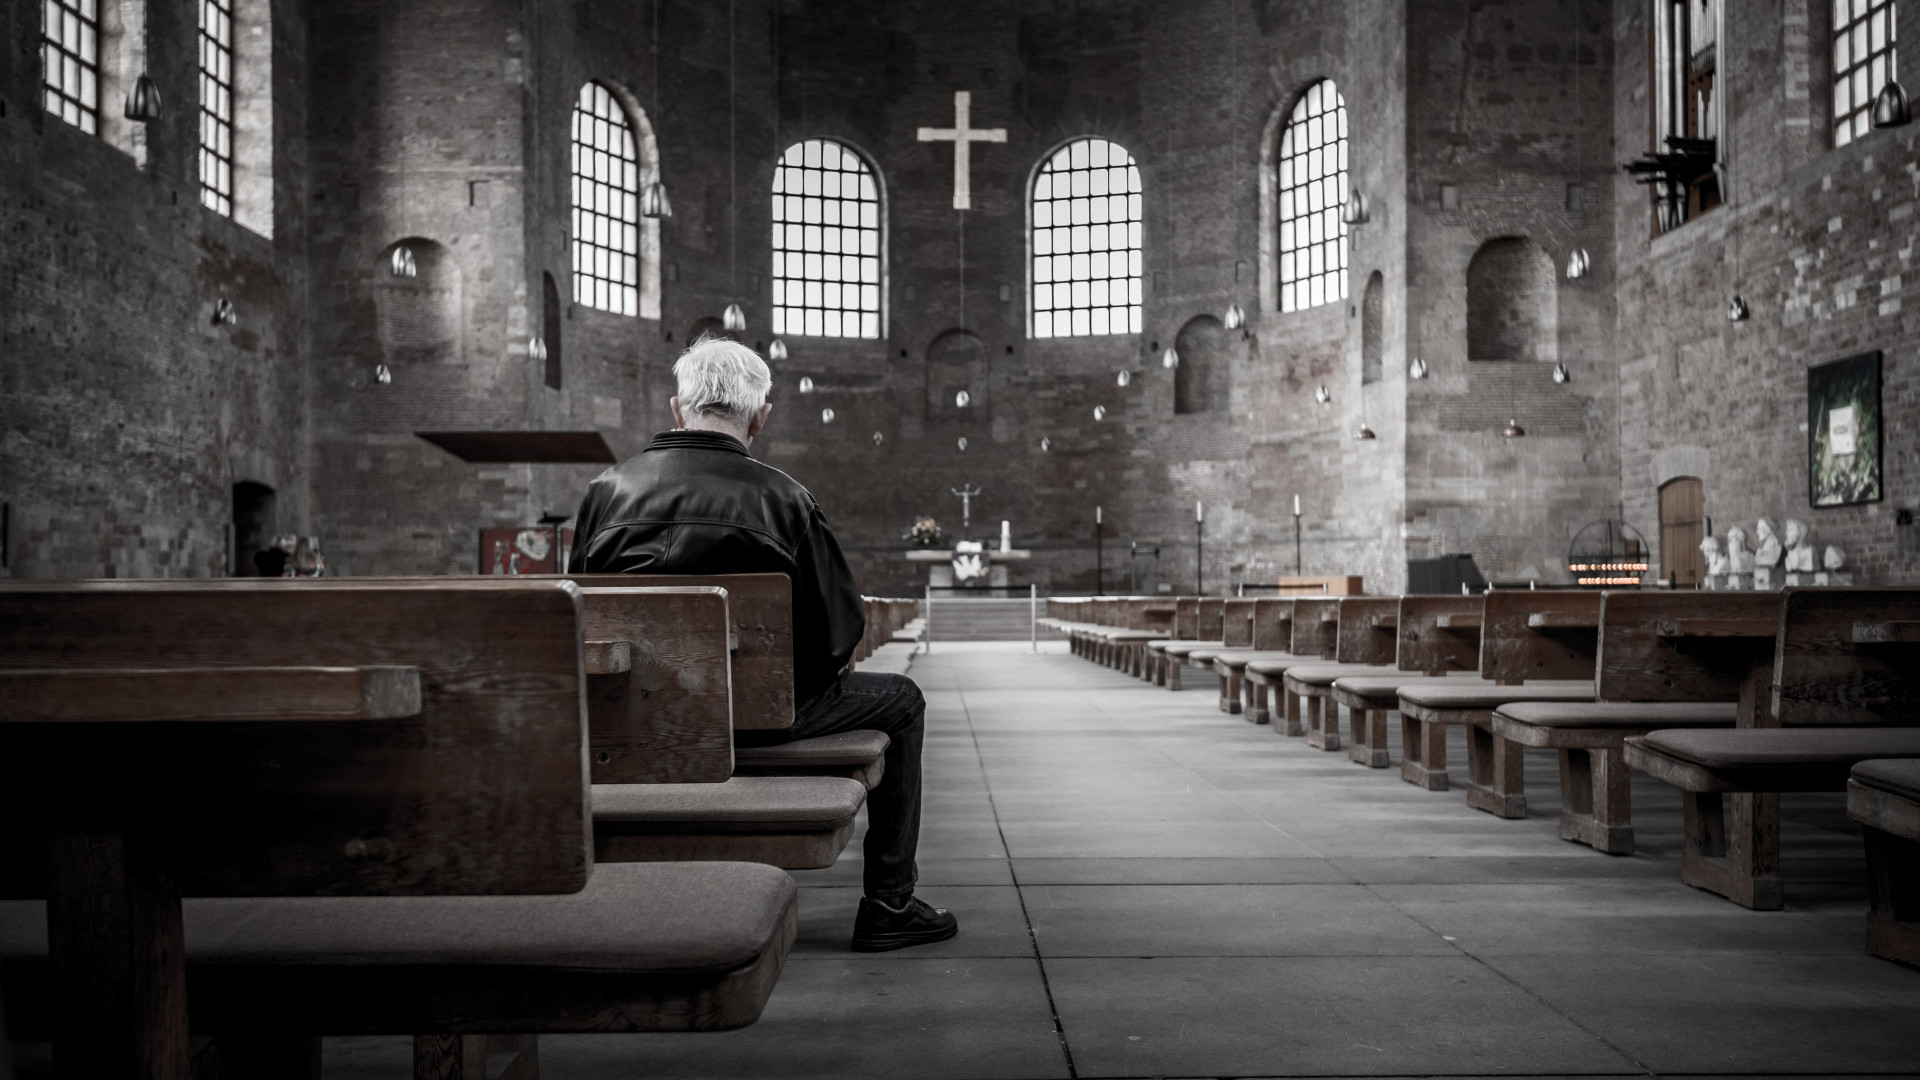 9 Things Your Church Should Do to Improve Visitors' Experience